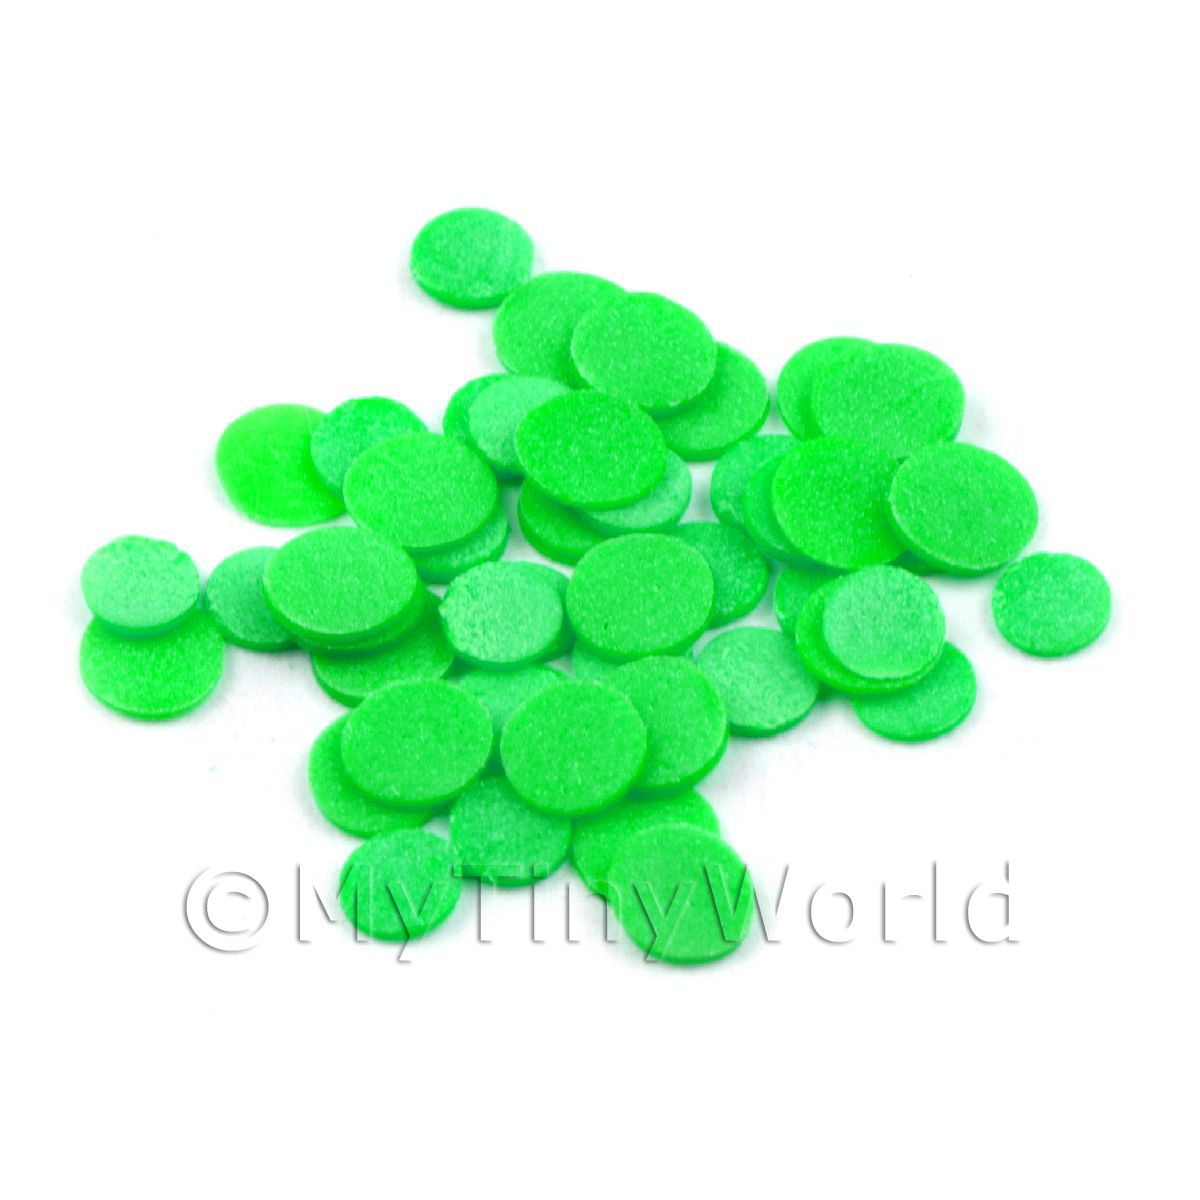 50 Light Green Polka Dot Cane Slices - Nail Art (11NS22)